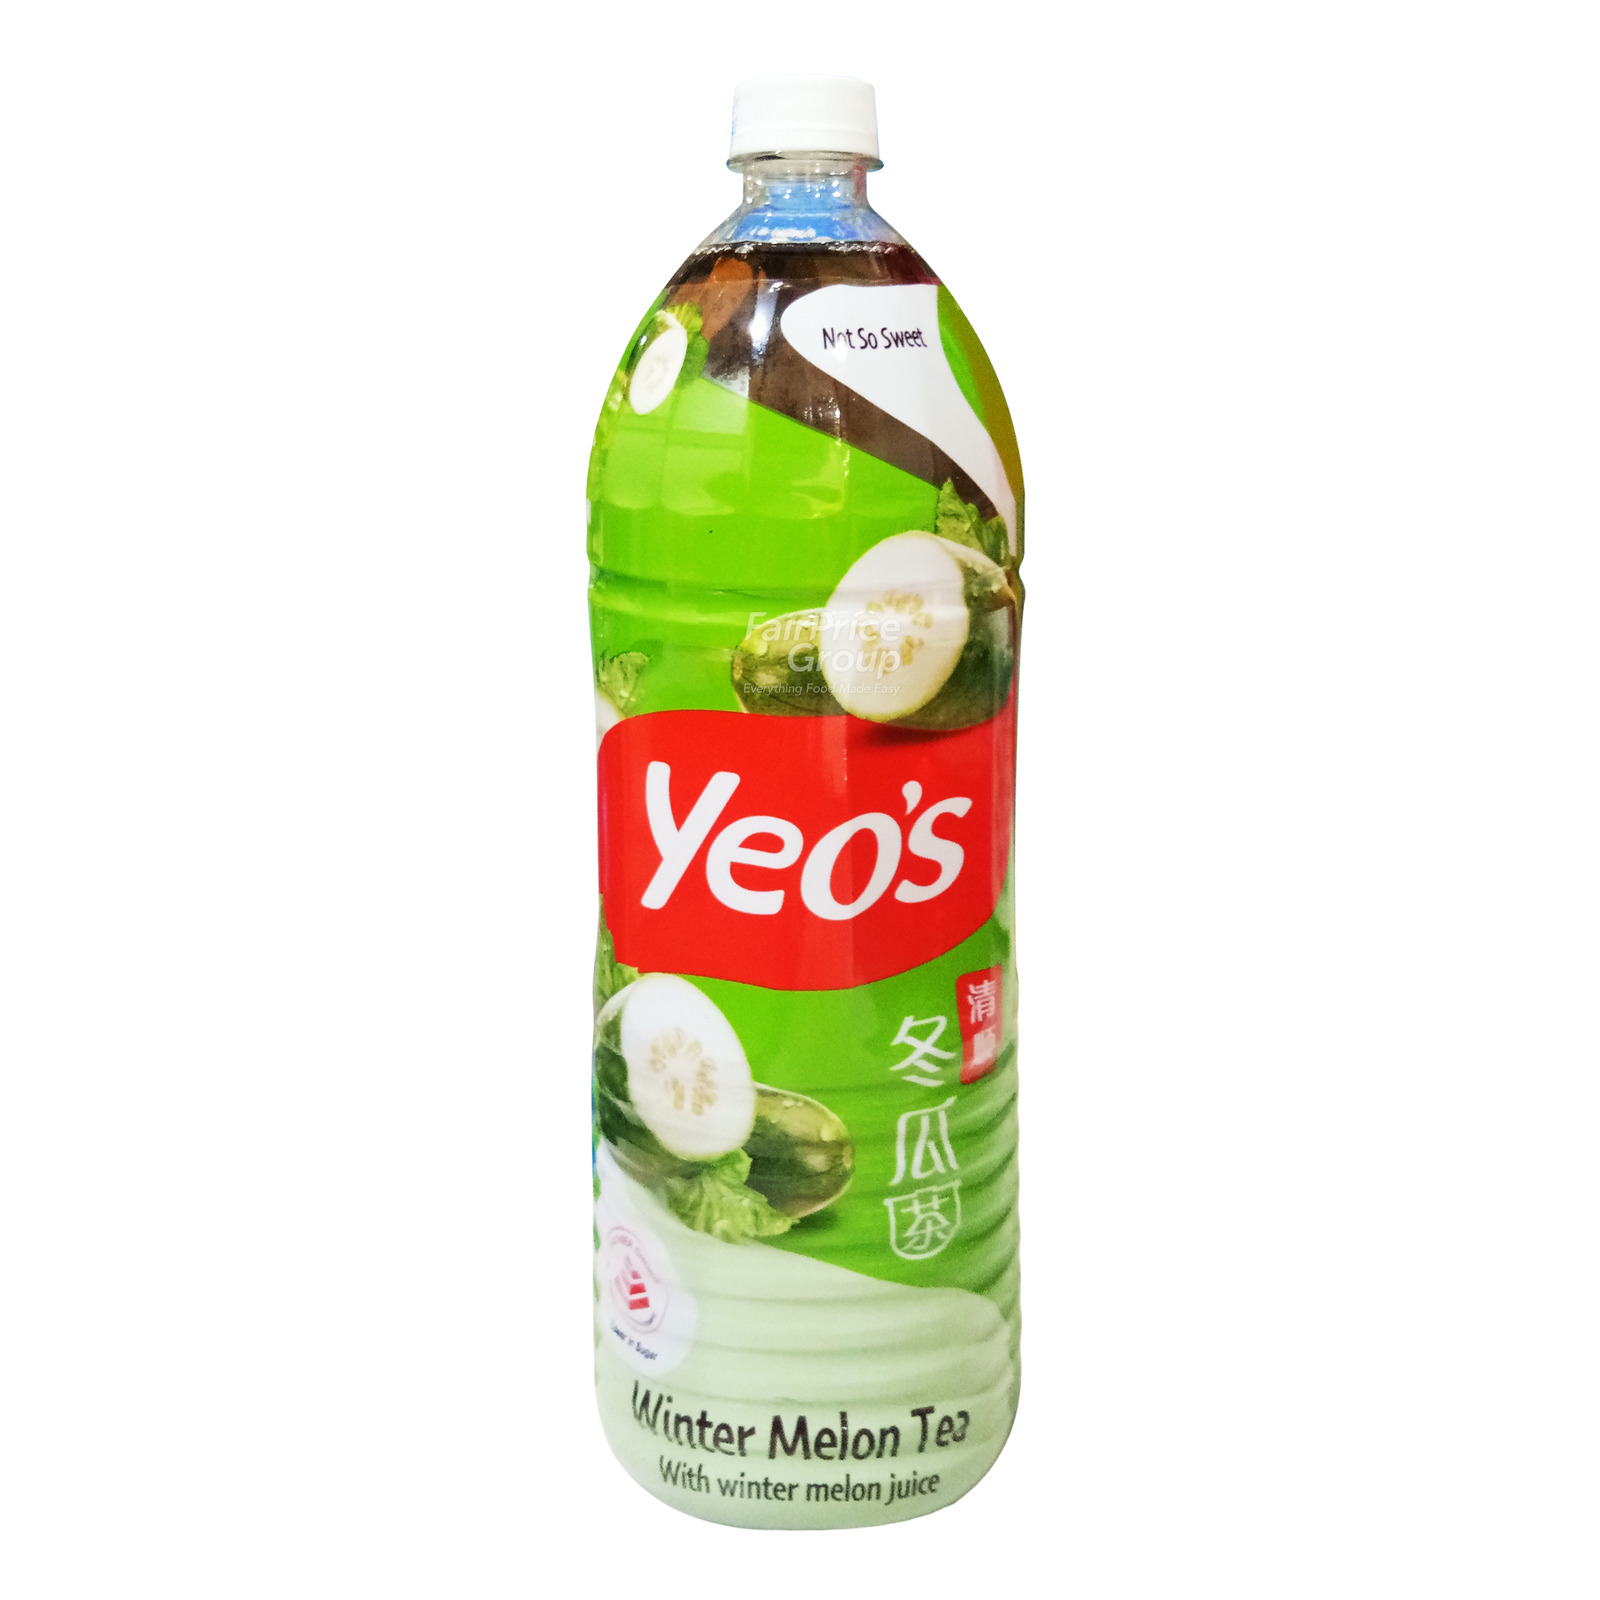 Yeo's Bottle Drink - Winter Melon Tea